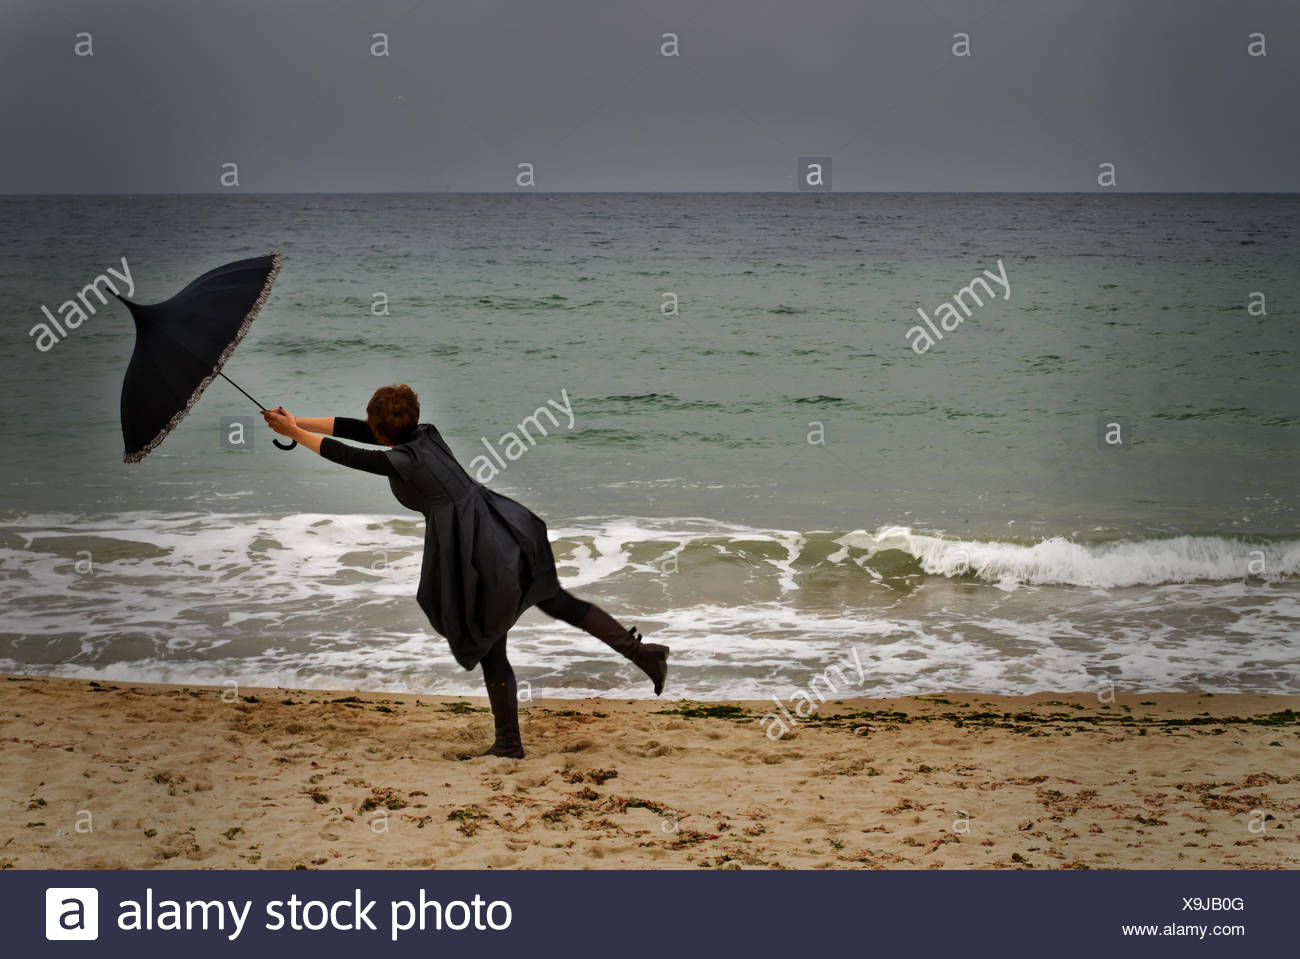 Woman with umbrella on beach on a Windy day - Stock Image